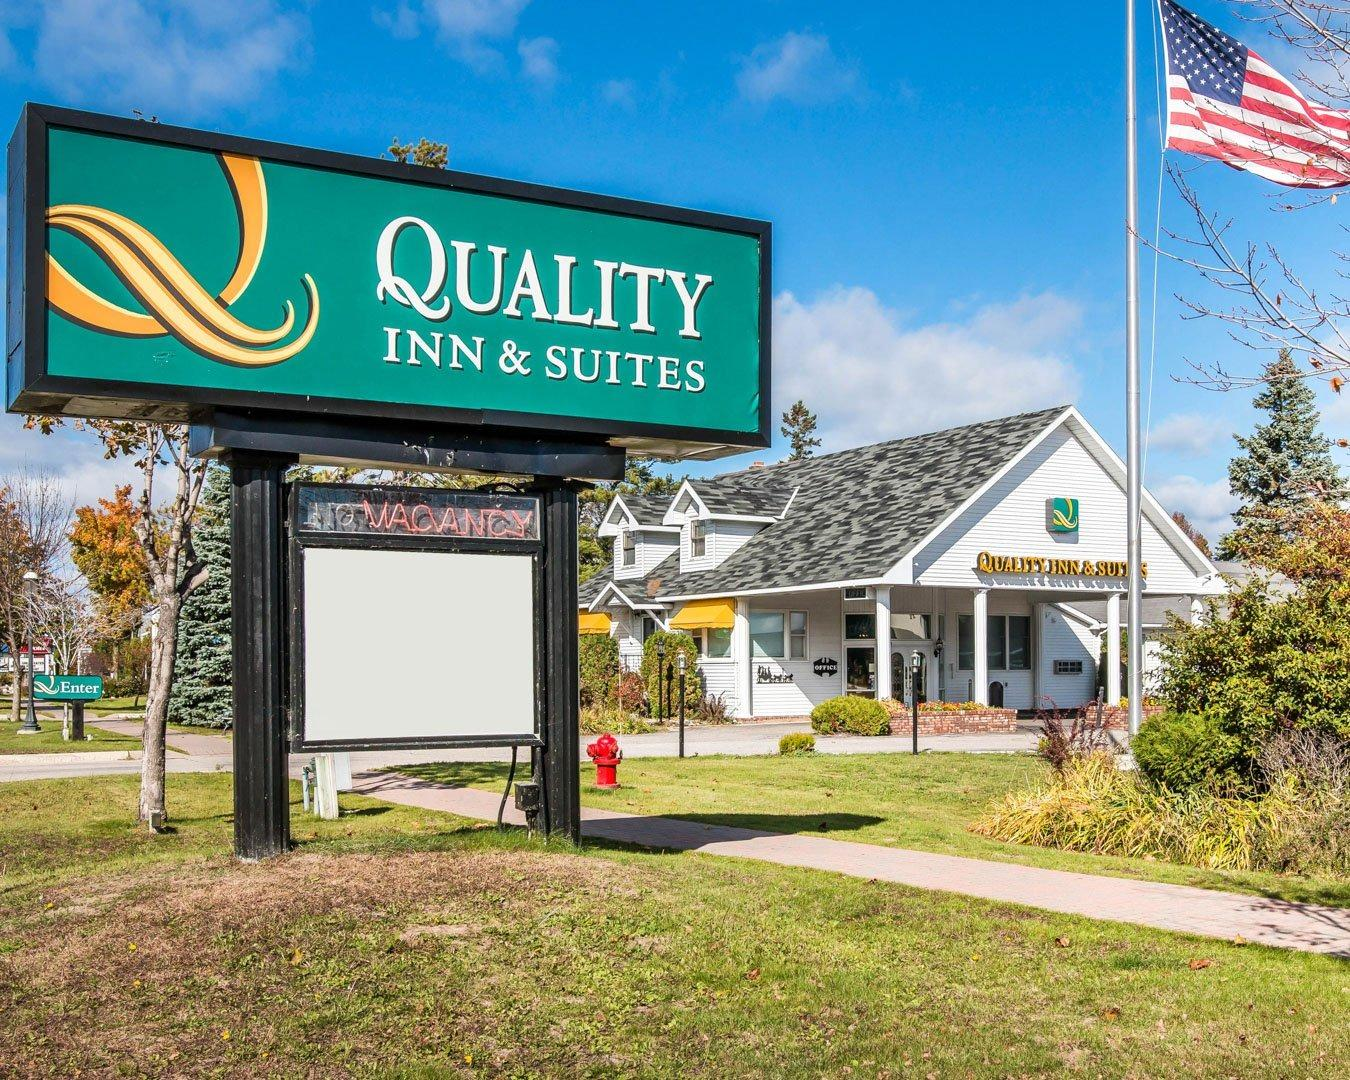 Shopping Tips for Quality Inn: 1. If you discover a cheaper rate within one day of booking your reservation, Quality Inn will discount your rate to the lower rate and give you an additional night stay for free! 2. Adults age 60 and older can get additional discounts of % off at Quality Inn Hotels.